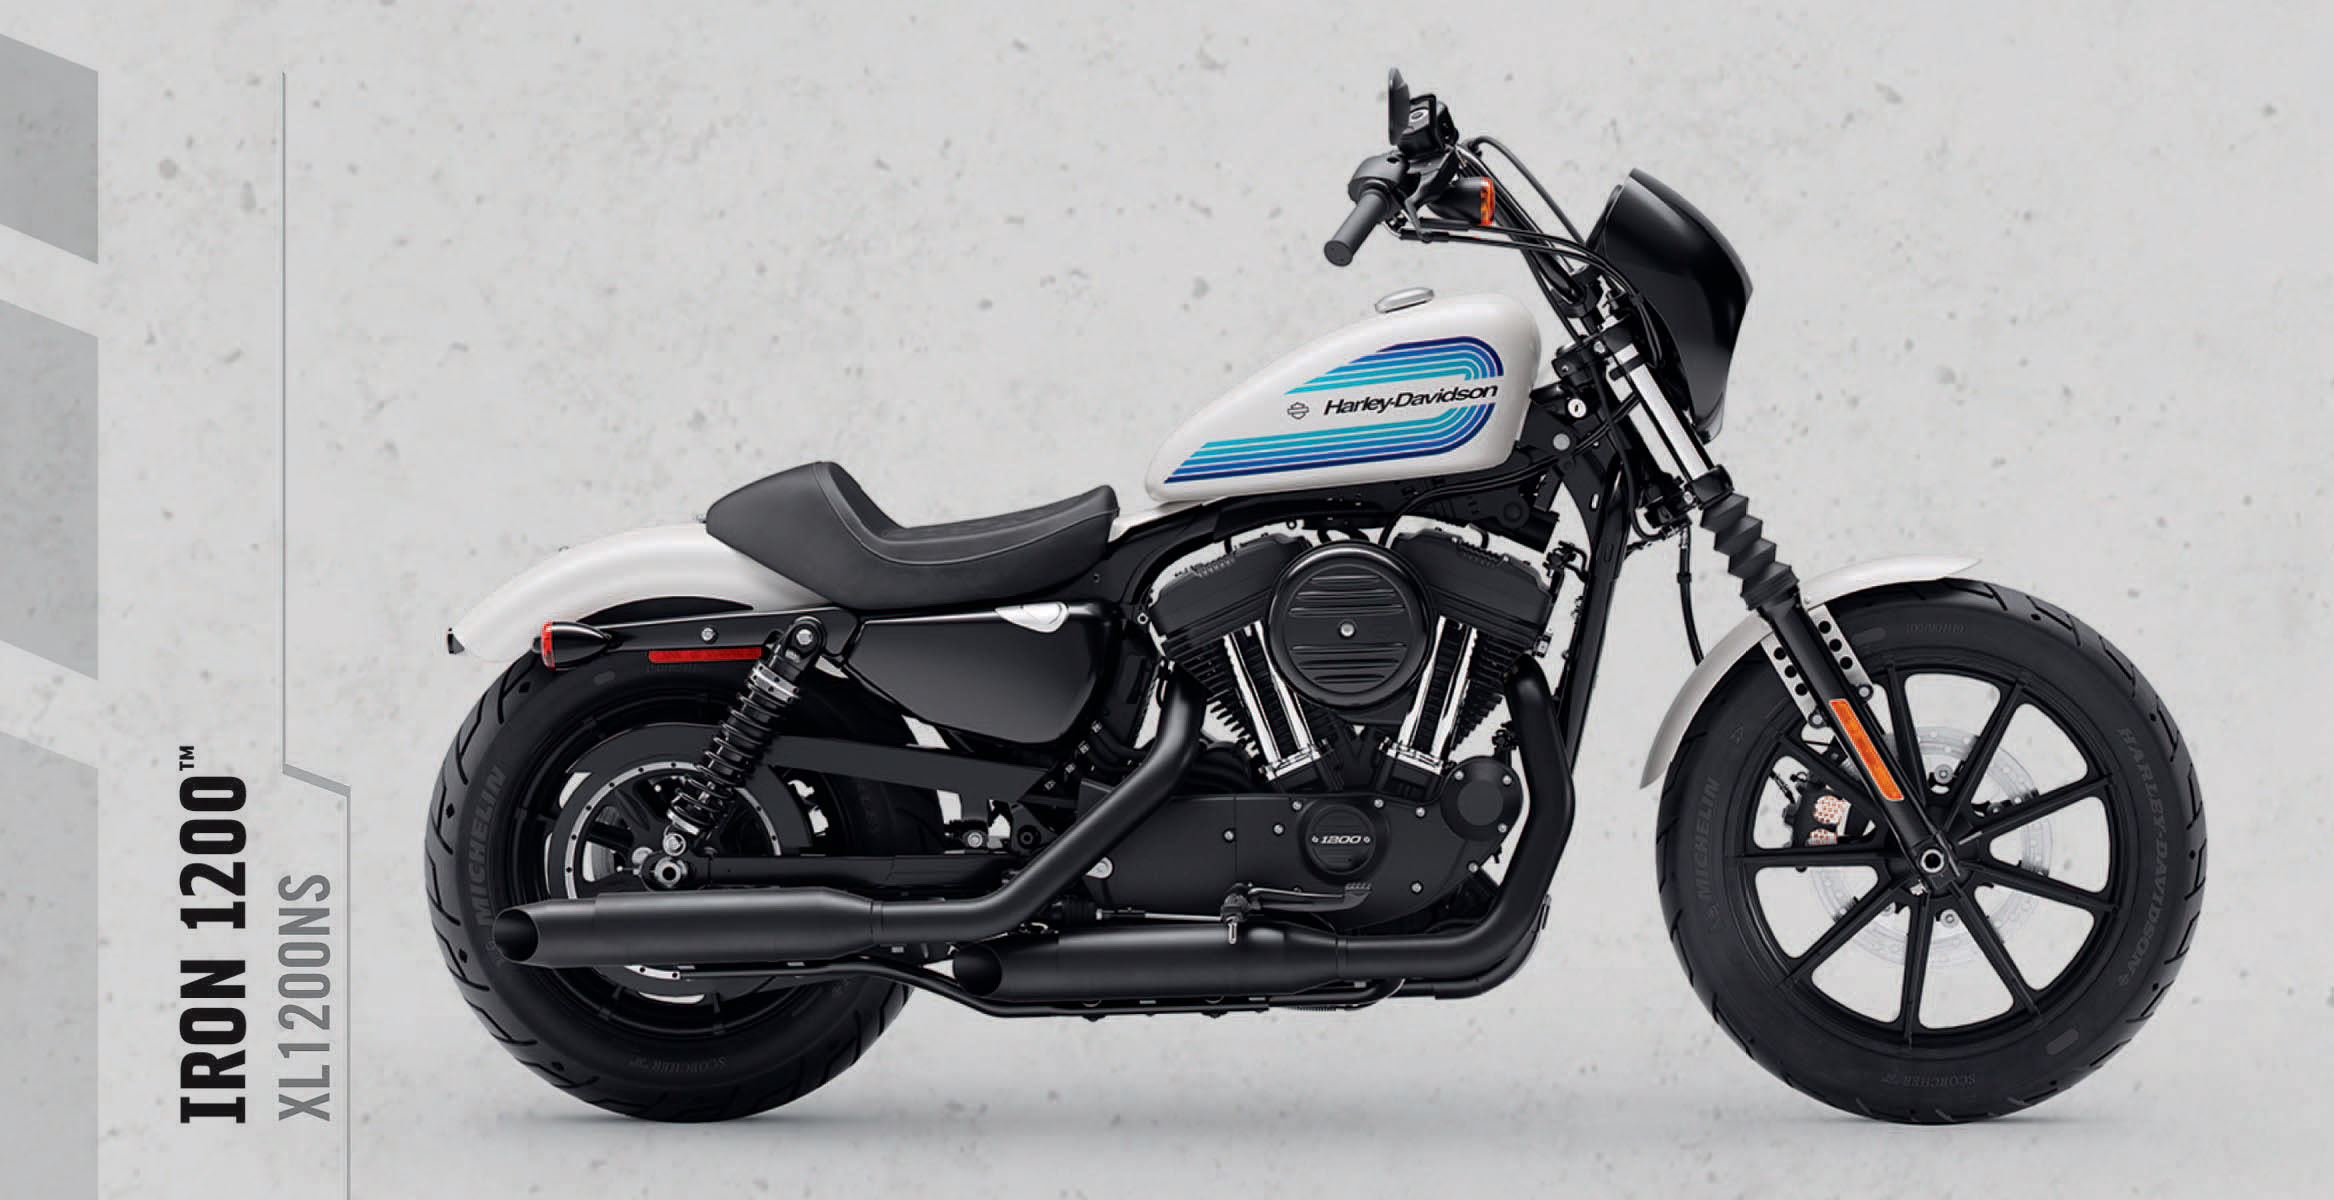 Iron 1200™   A modern take on what's been putting big grins on the faces of Sportster® motorcycle riders for decades.